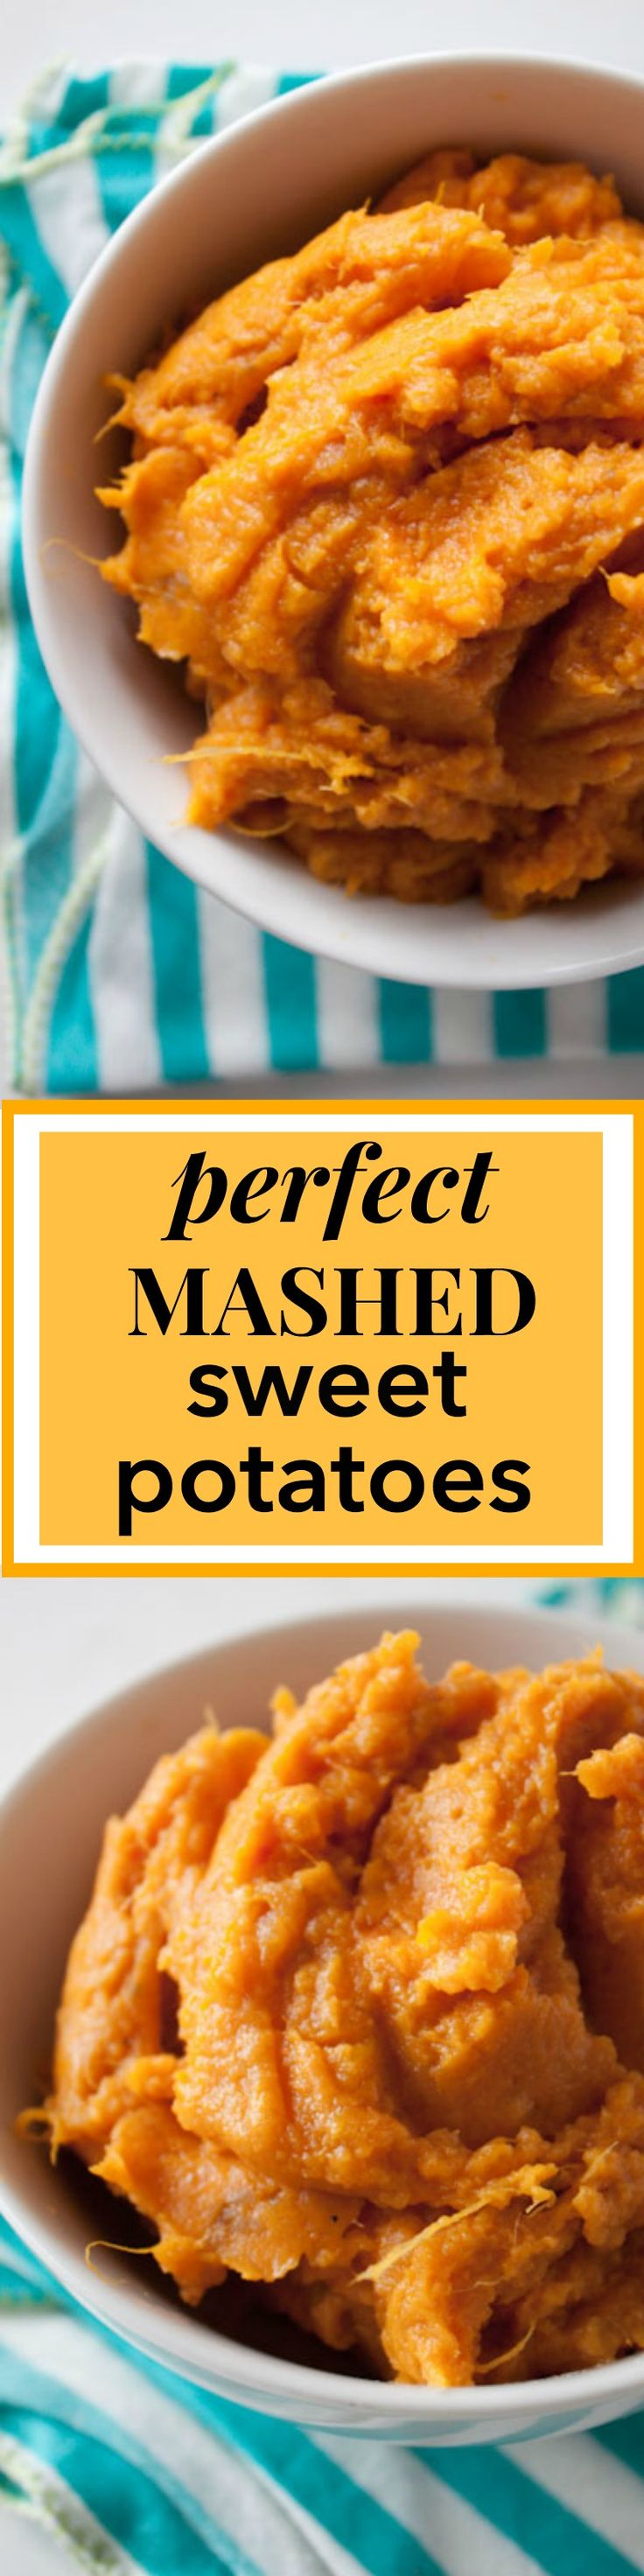 Perfect Mashed Sweet Potatoes Recipe! Add a little cinnamon, ginger, and nutmeg, and prepare to have the best side dish! The recipe can easily be made vegan with coconut oil and unsweetened almond milk. 152 calories per serving! #sidedish #sides #healthy via @andiemitchell